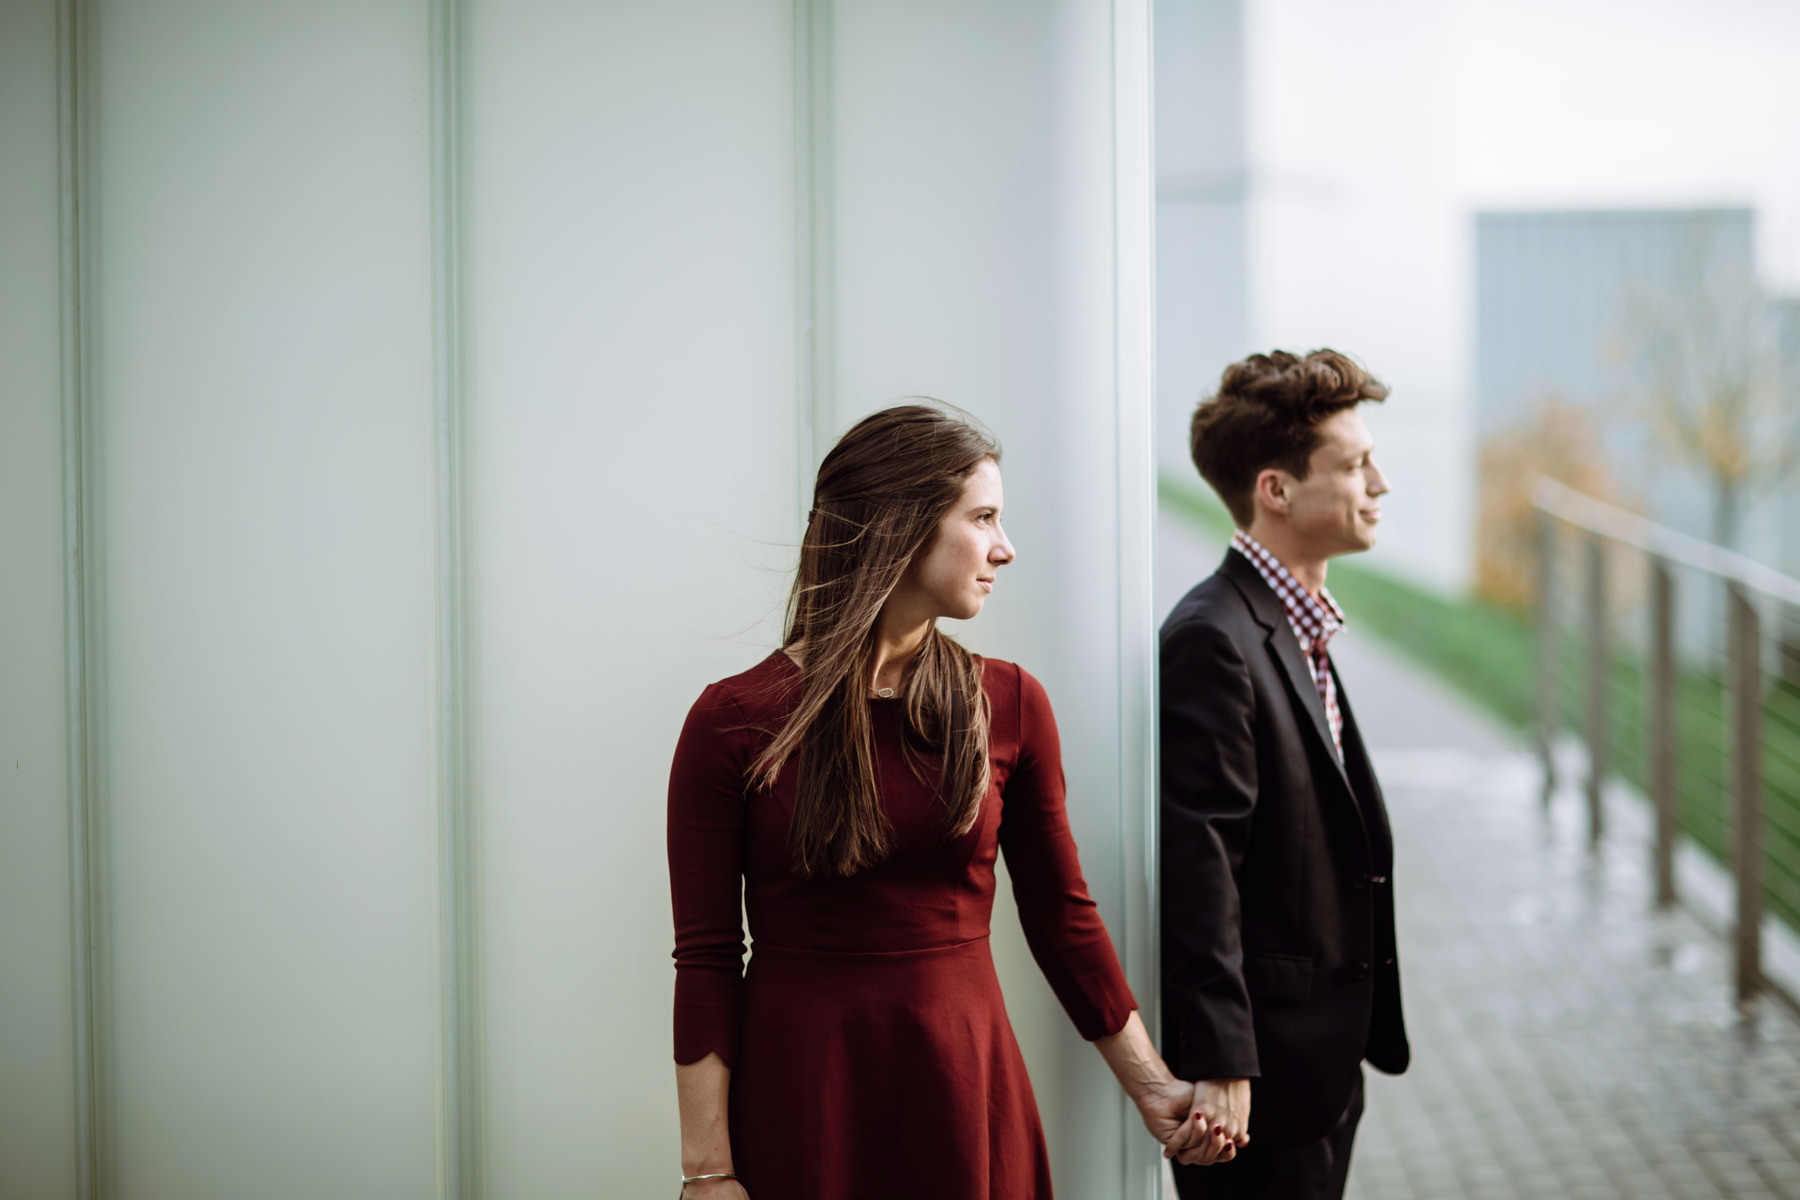 Nelson-Atkins Museum Engagmentshoot_Kansas City_Kindling Wedding Photography (Blog)37.JPG